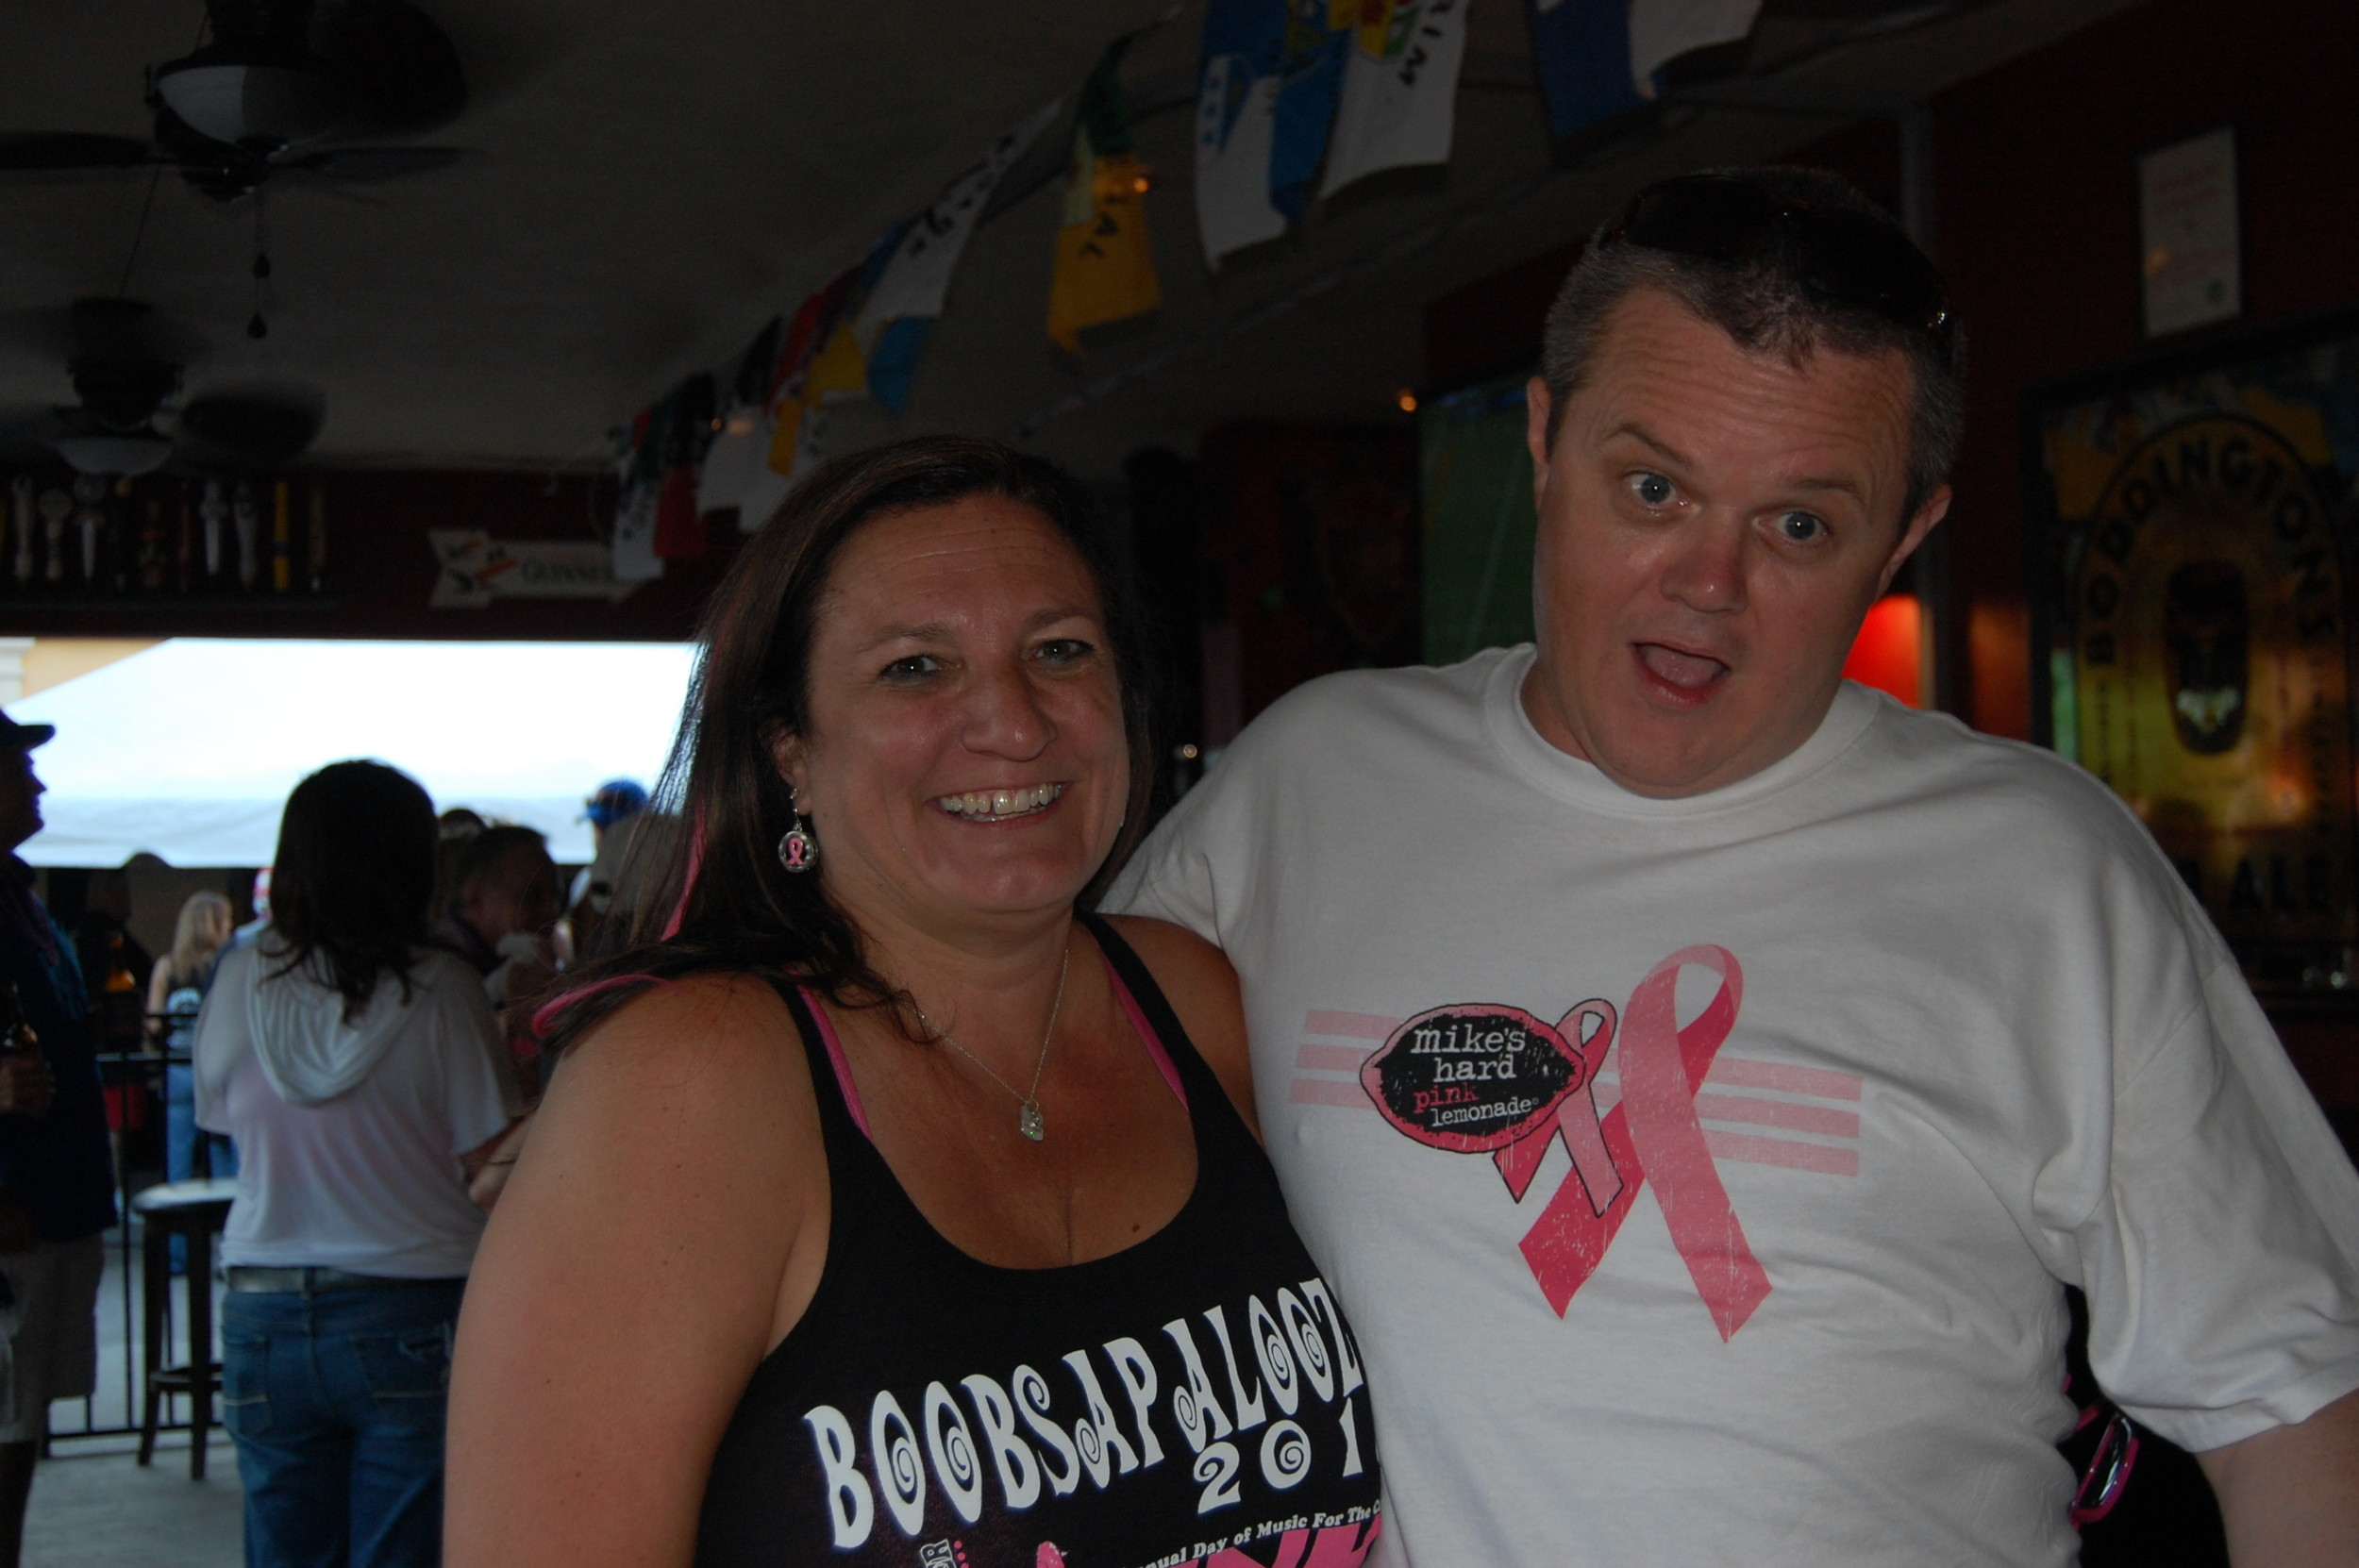 Hank Watson, president of bands against breast cancer, and Keith Doherty